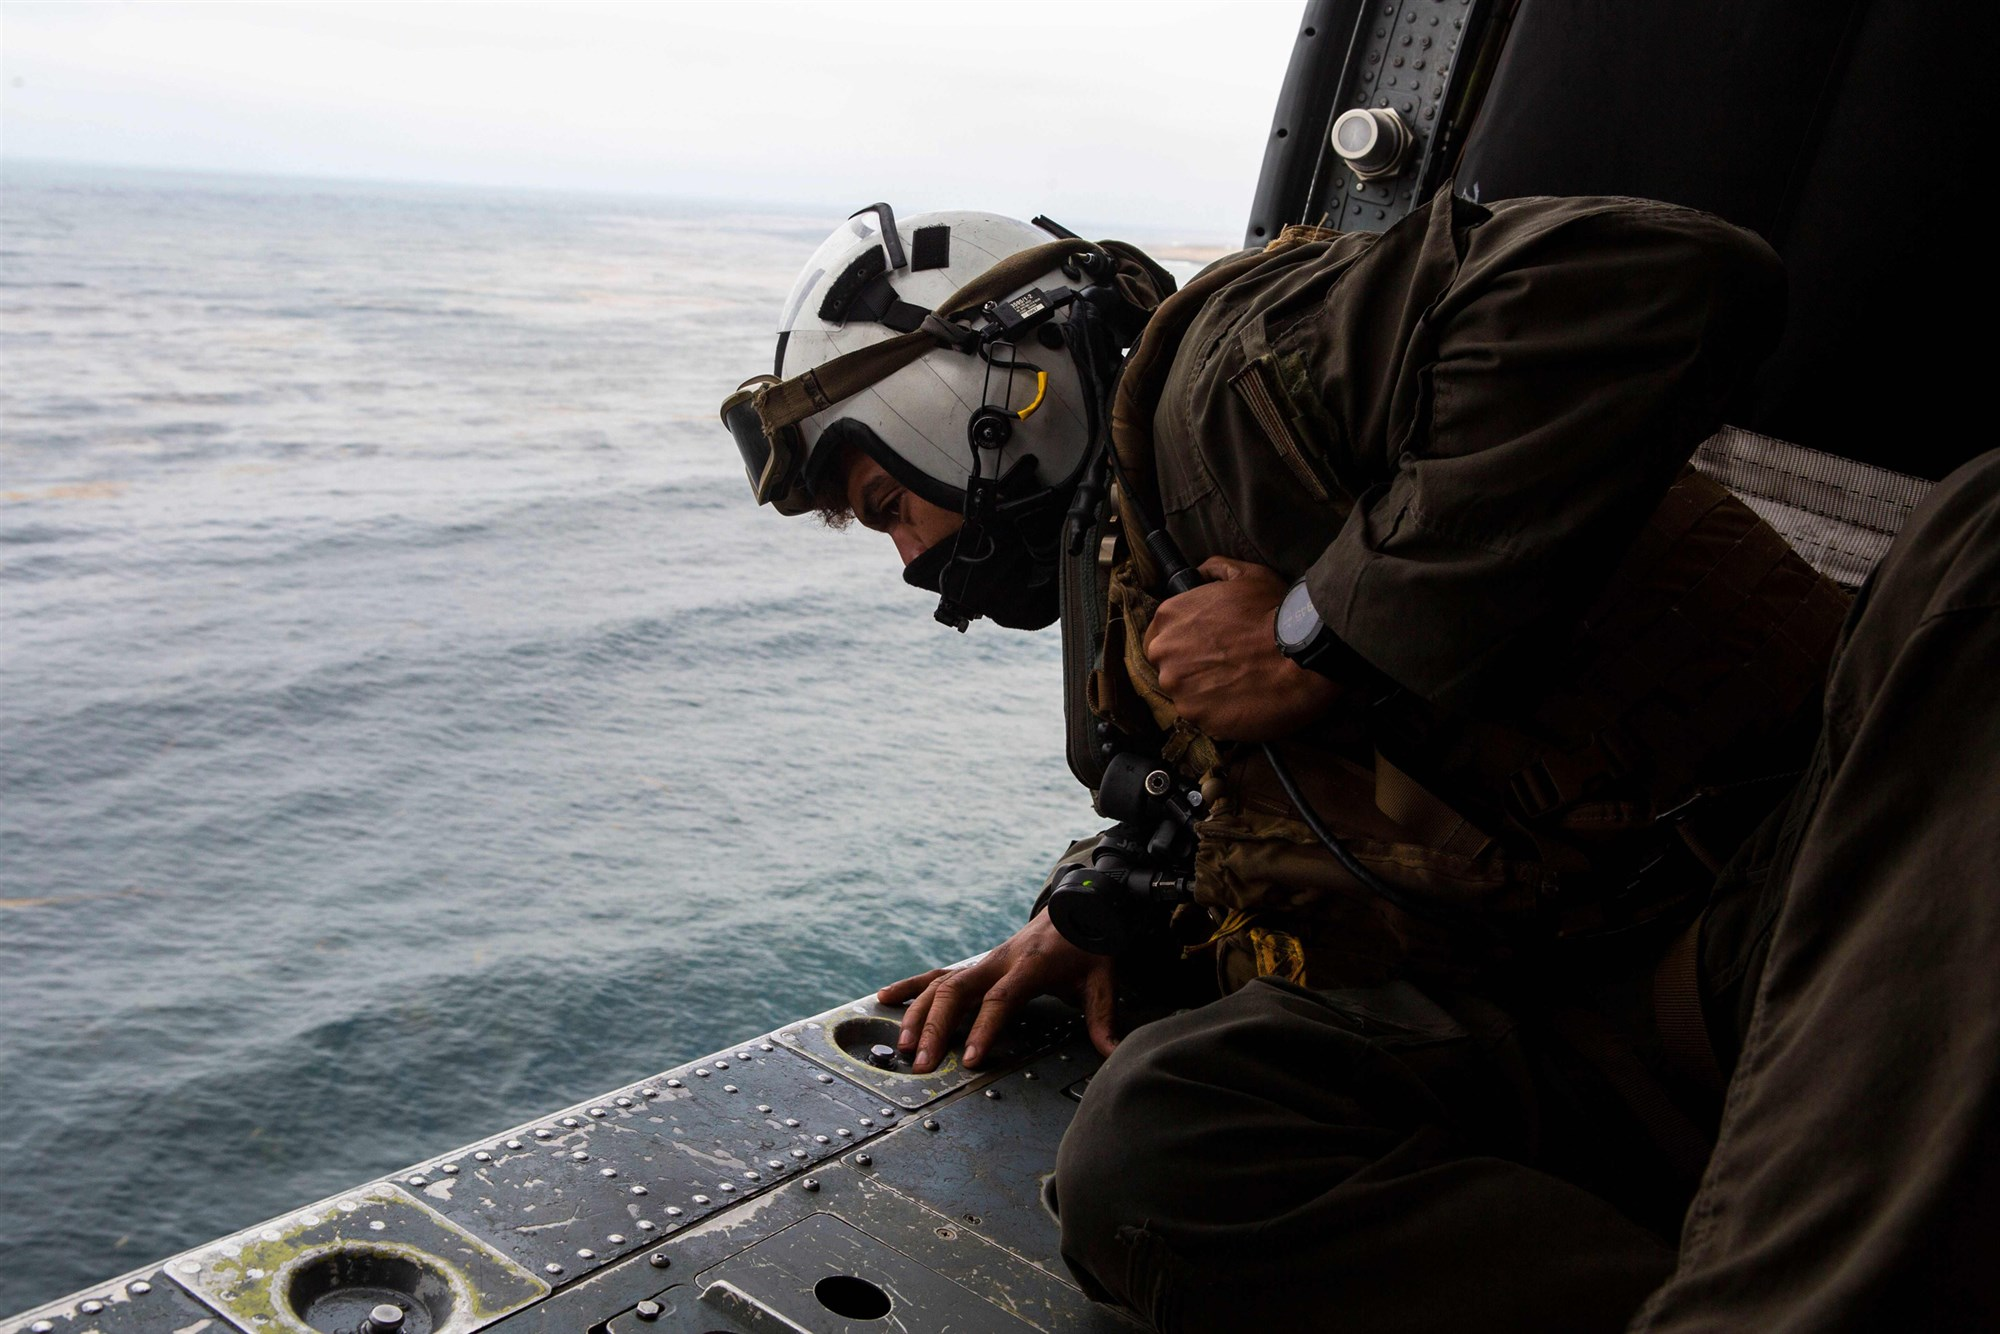 This US Marine Corps handout photo shows Naval Air Crewman 2nd Class Joseph Rivera, a search and rescue swimmer assigned to the amphibious assault ship USS Makin Island (LHD-8), looking out of a US Navy MH-60 Seahawk while conducting search and rescue relief operations following an AAV-P7/A1 assault amphibious vehicle mishap off the coast of Southern California on July 30, 2020.